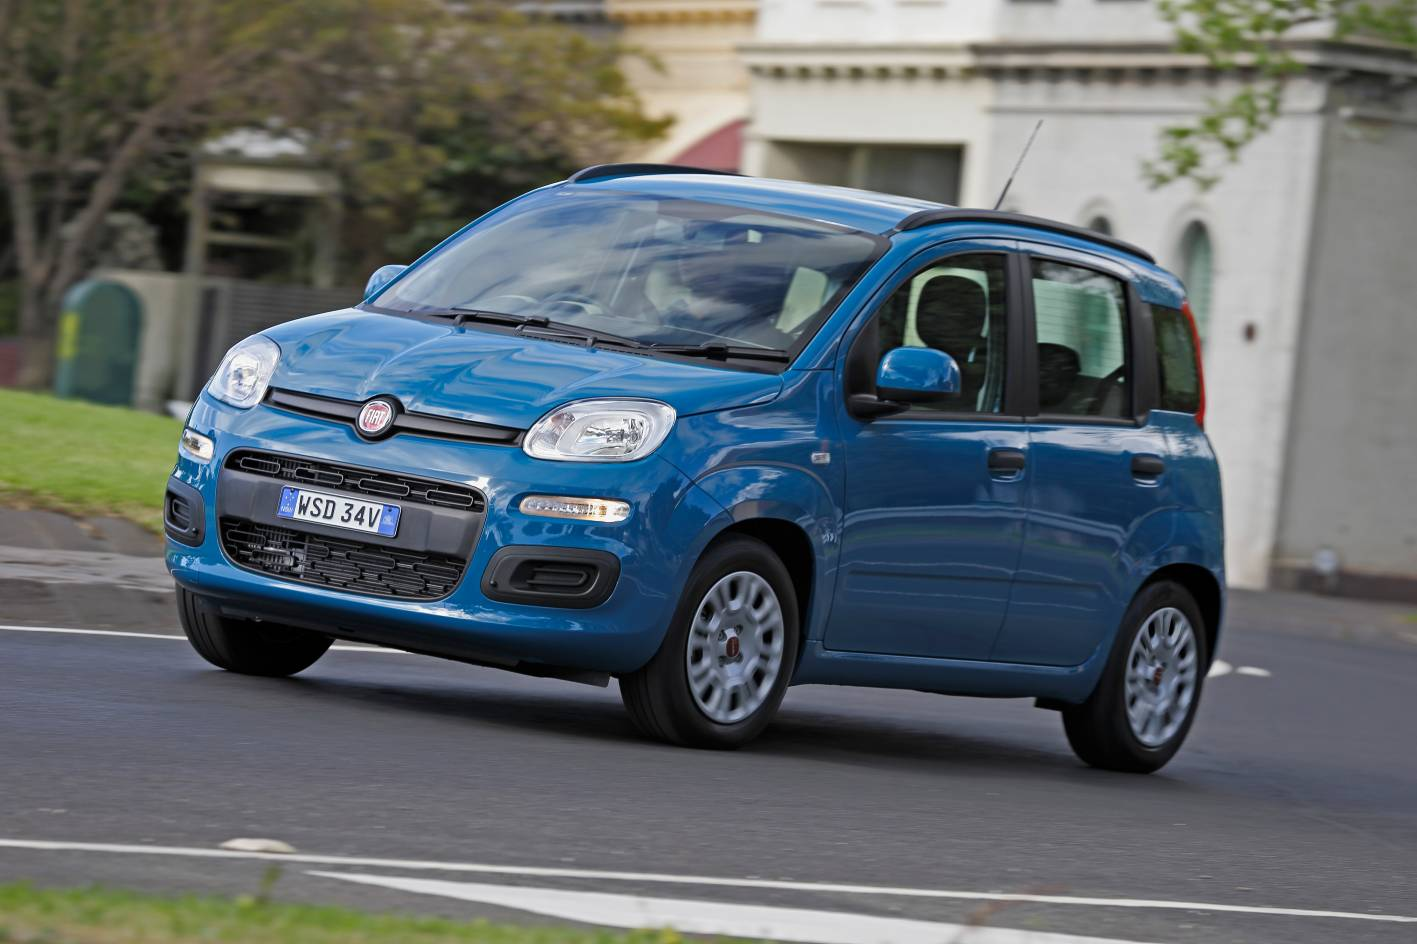 Fiat Panda Review 2014 Panda Easy And Trekking